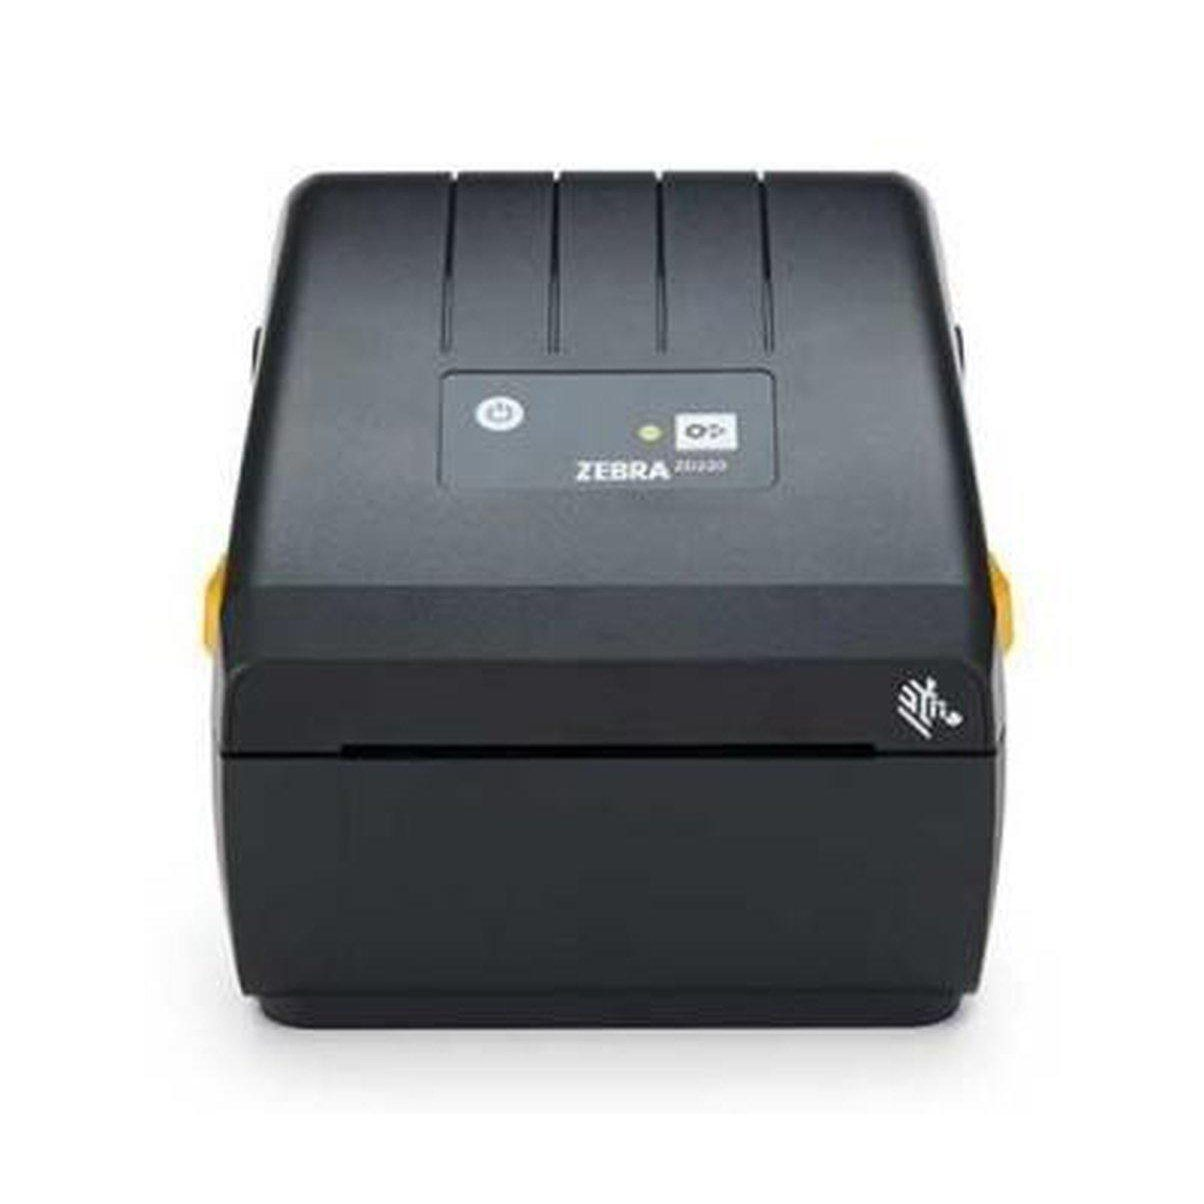 Zebra ZD230 Direct Thermal Label Printer 203DPI Ethernet, USB | ZD23042-D0EC00EZ Label Printer Zebra